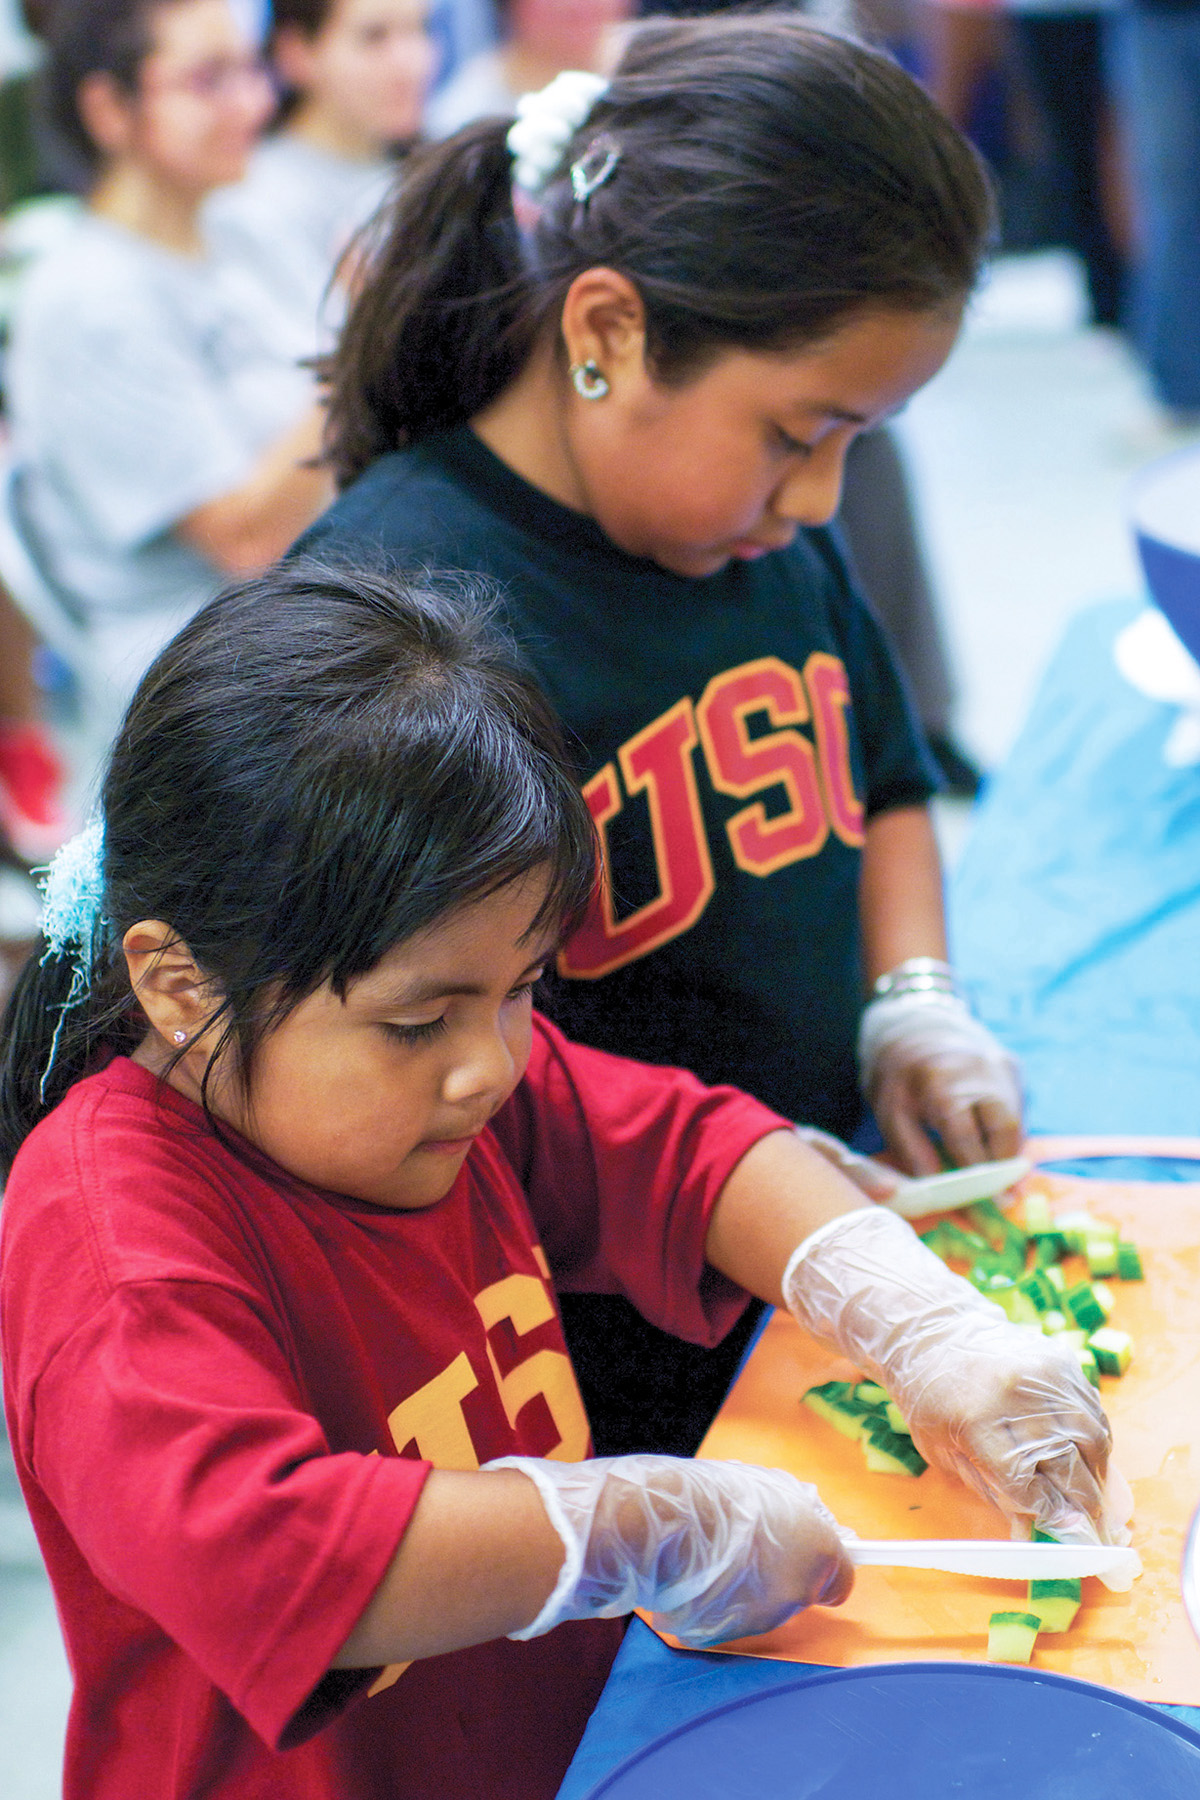 Fit Families program feeds a need for healthier eating